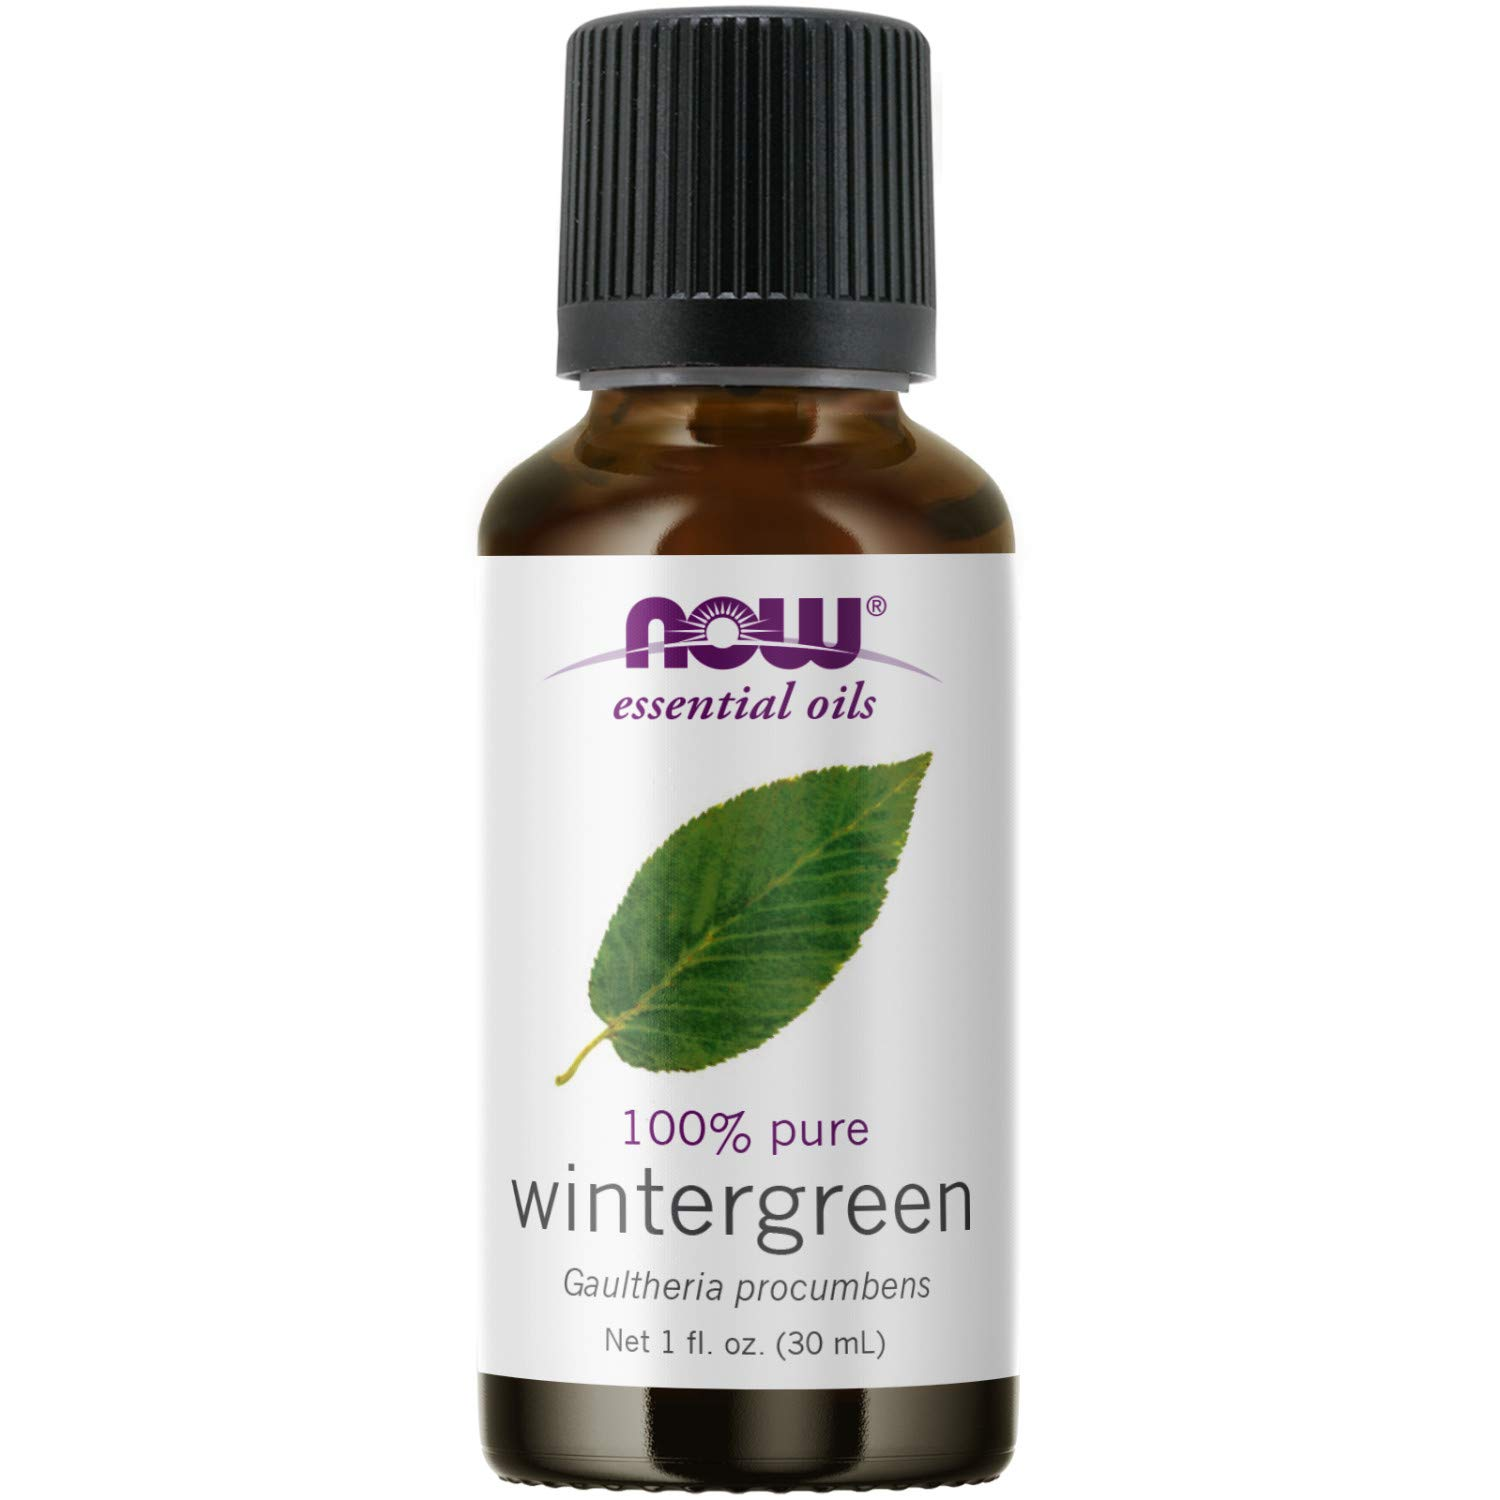 NOW Essential Oils Wintergreen Sc Aromatherapy Max 40% OFF Ranking TOP10 Stimulating Oil